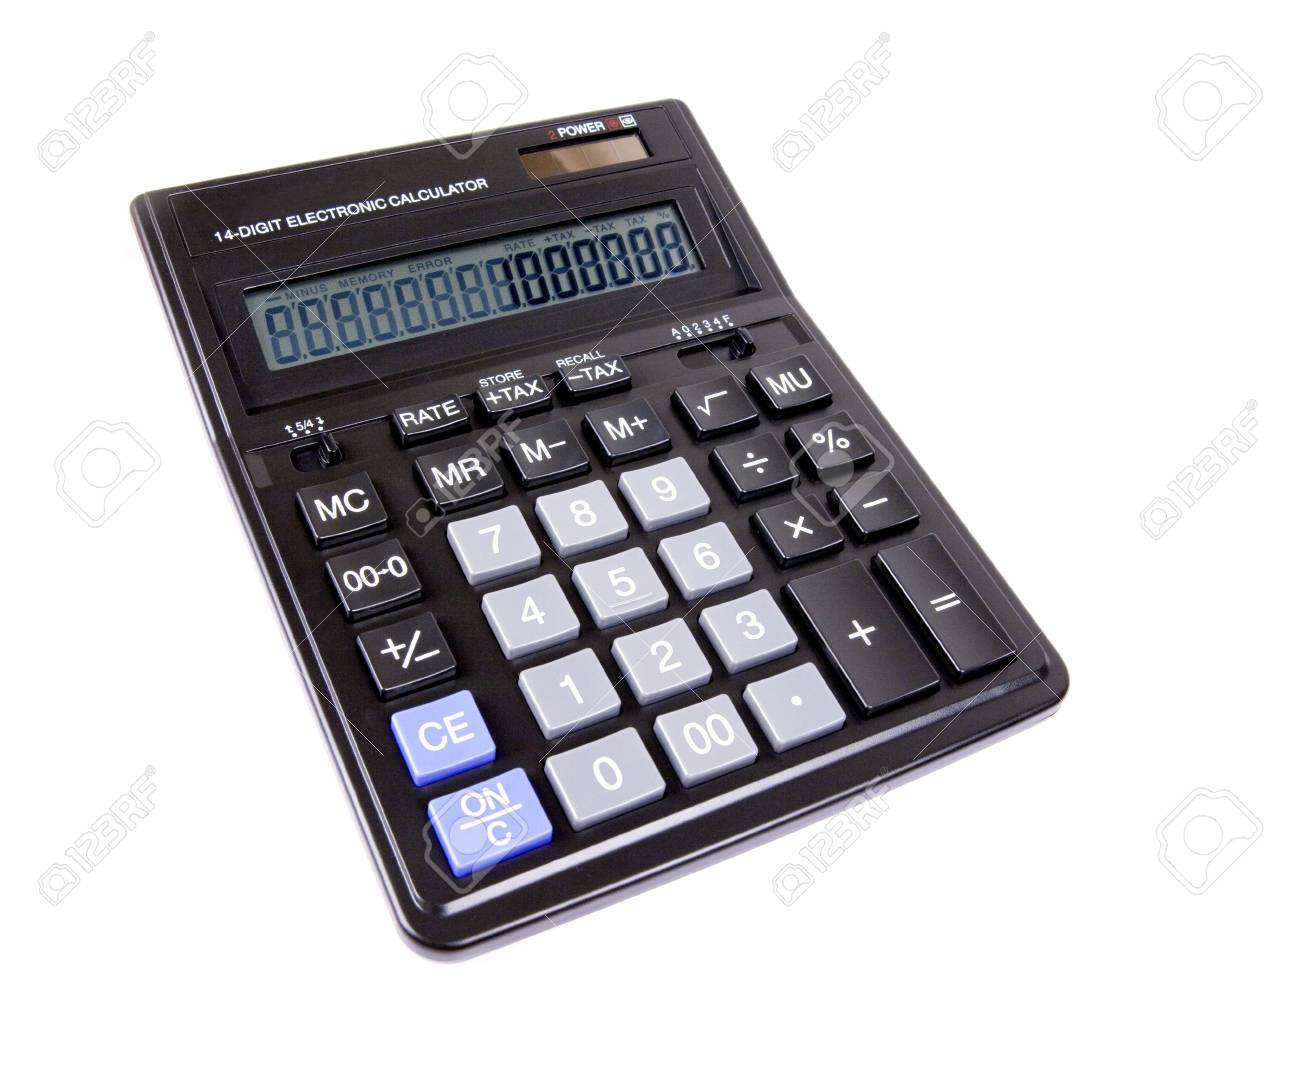 calculator Stock Photo - 7903723